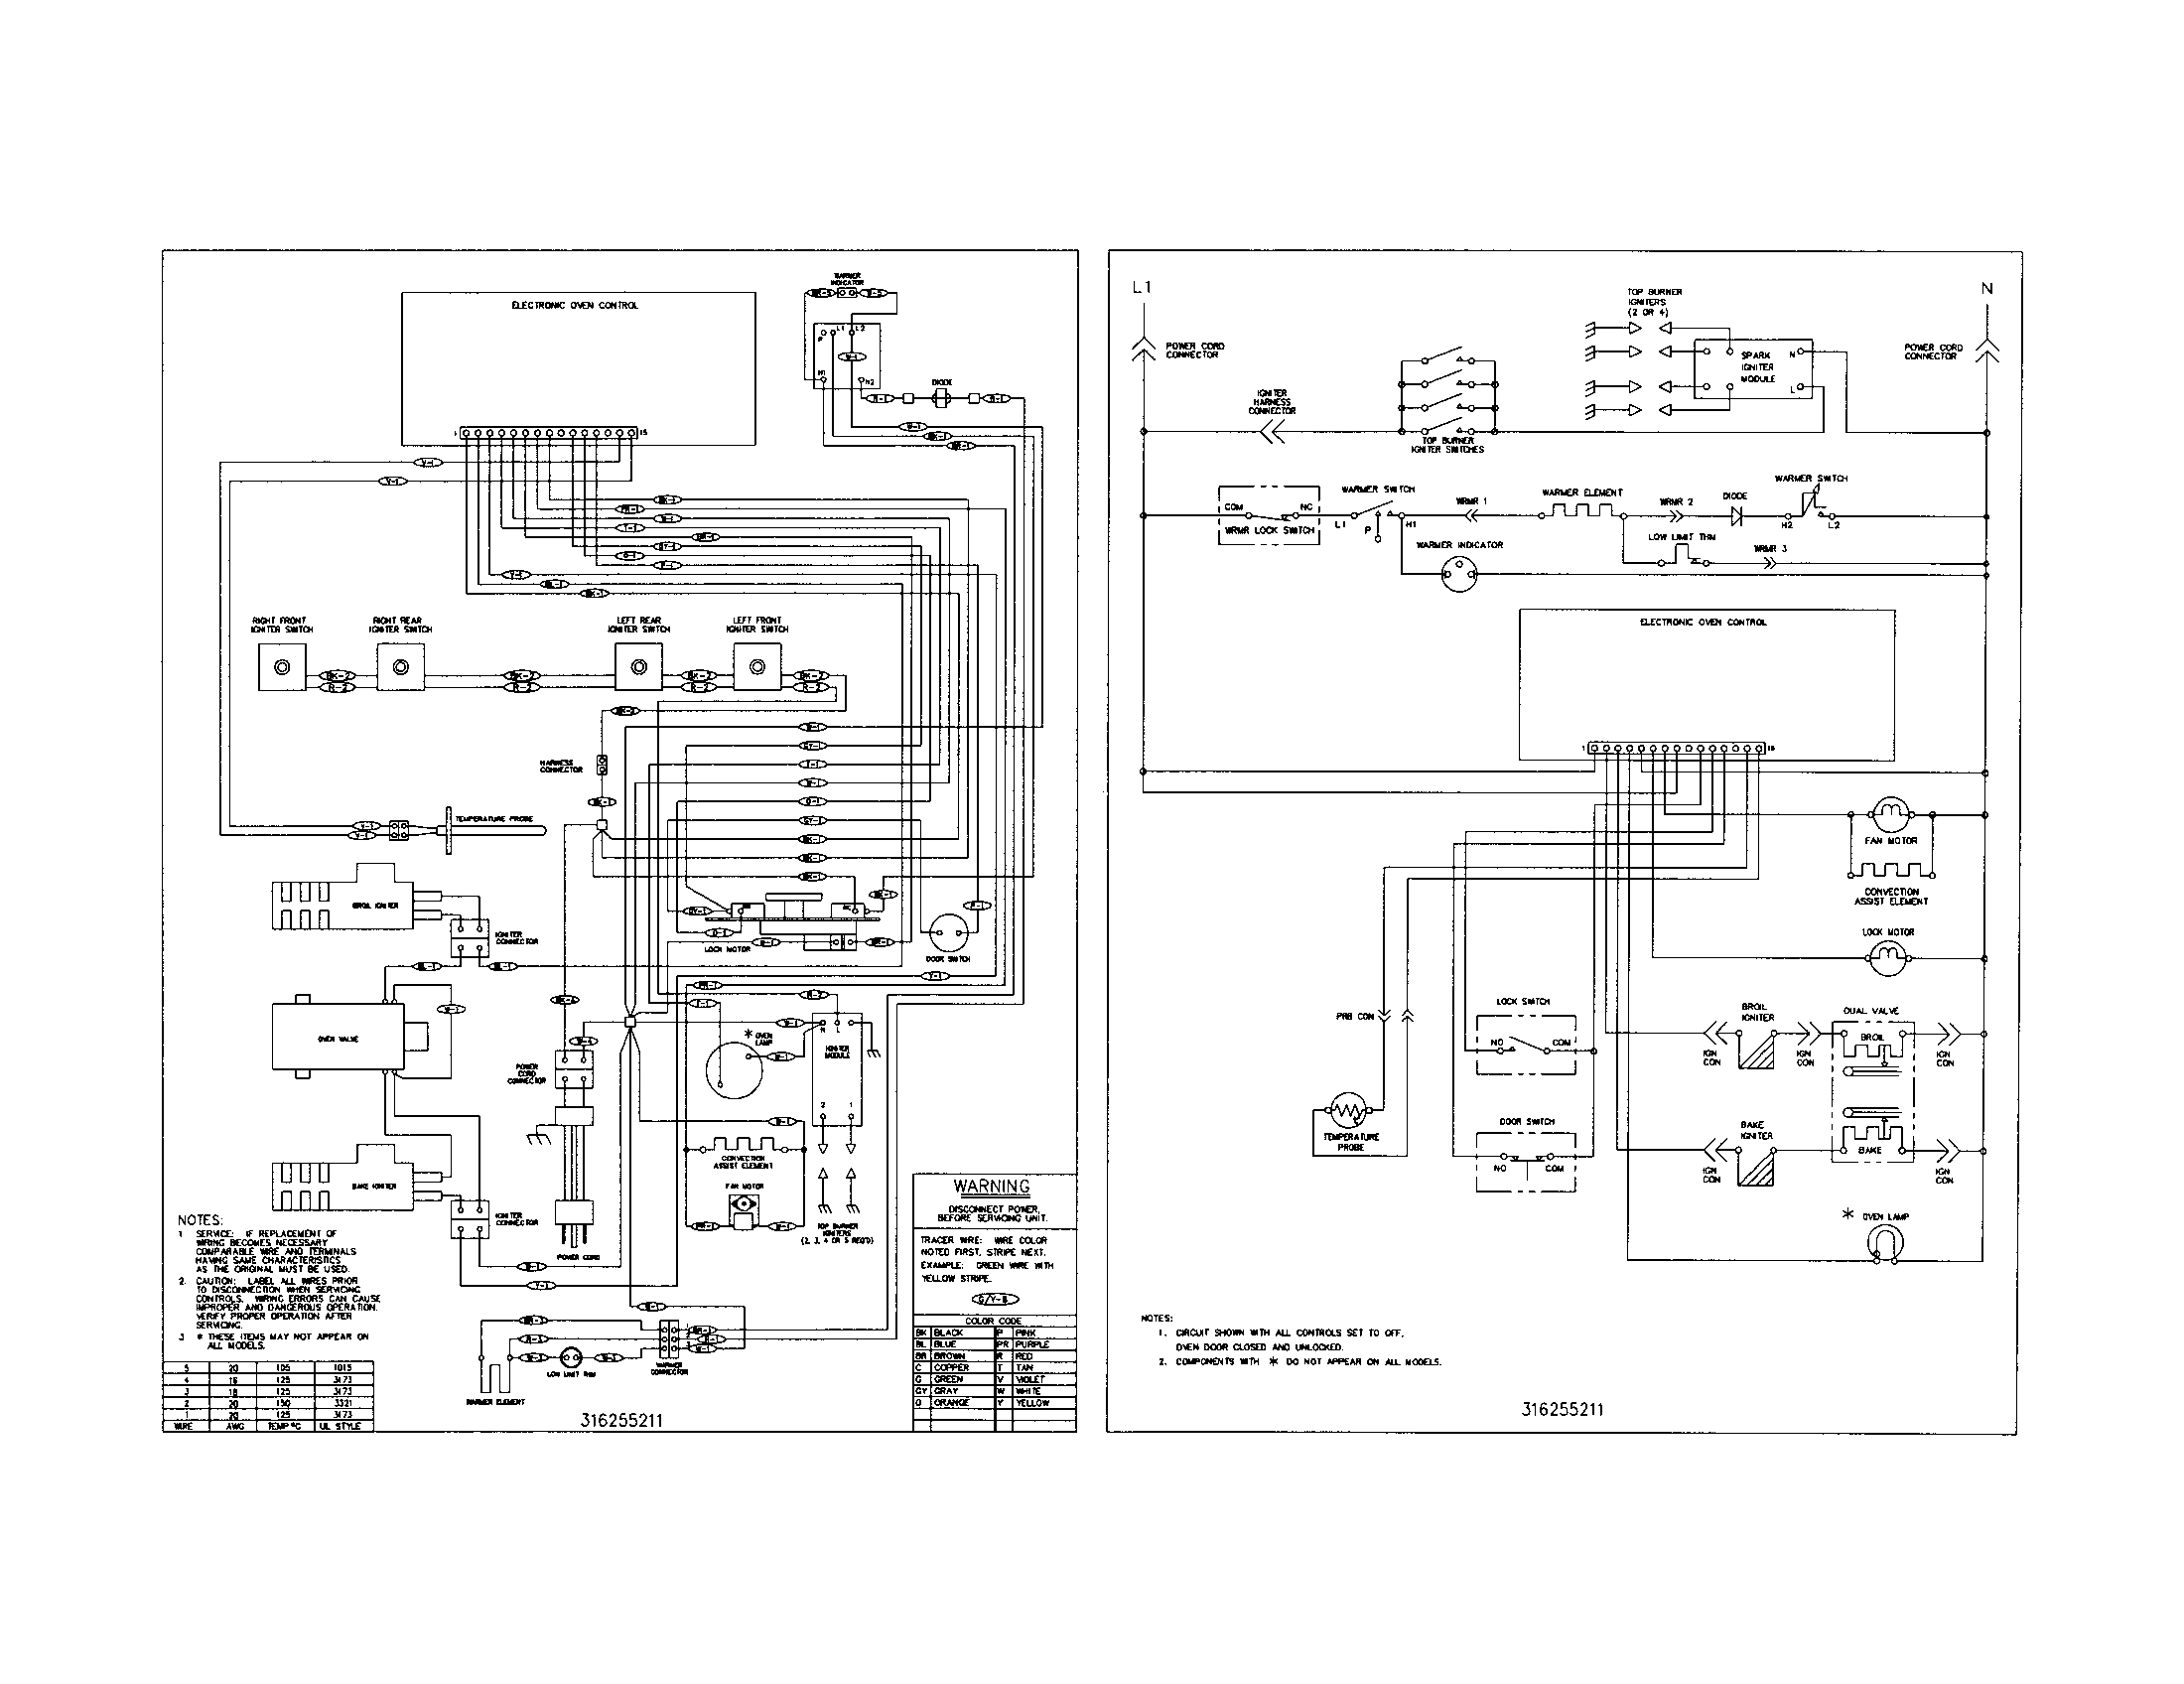 Frigidaire Wiring Schematic - Wiring Diagram G11 on